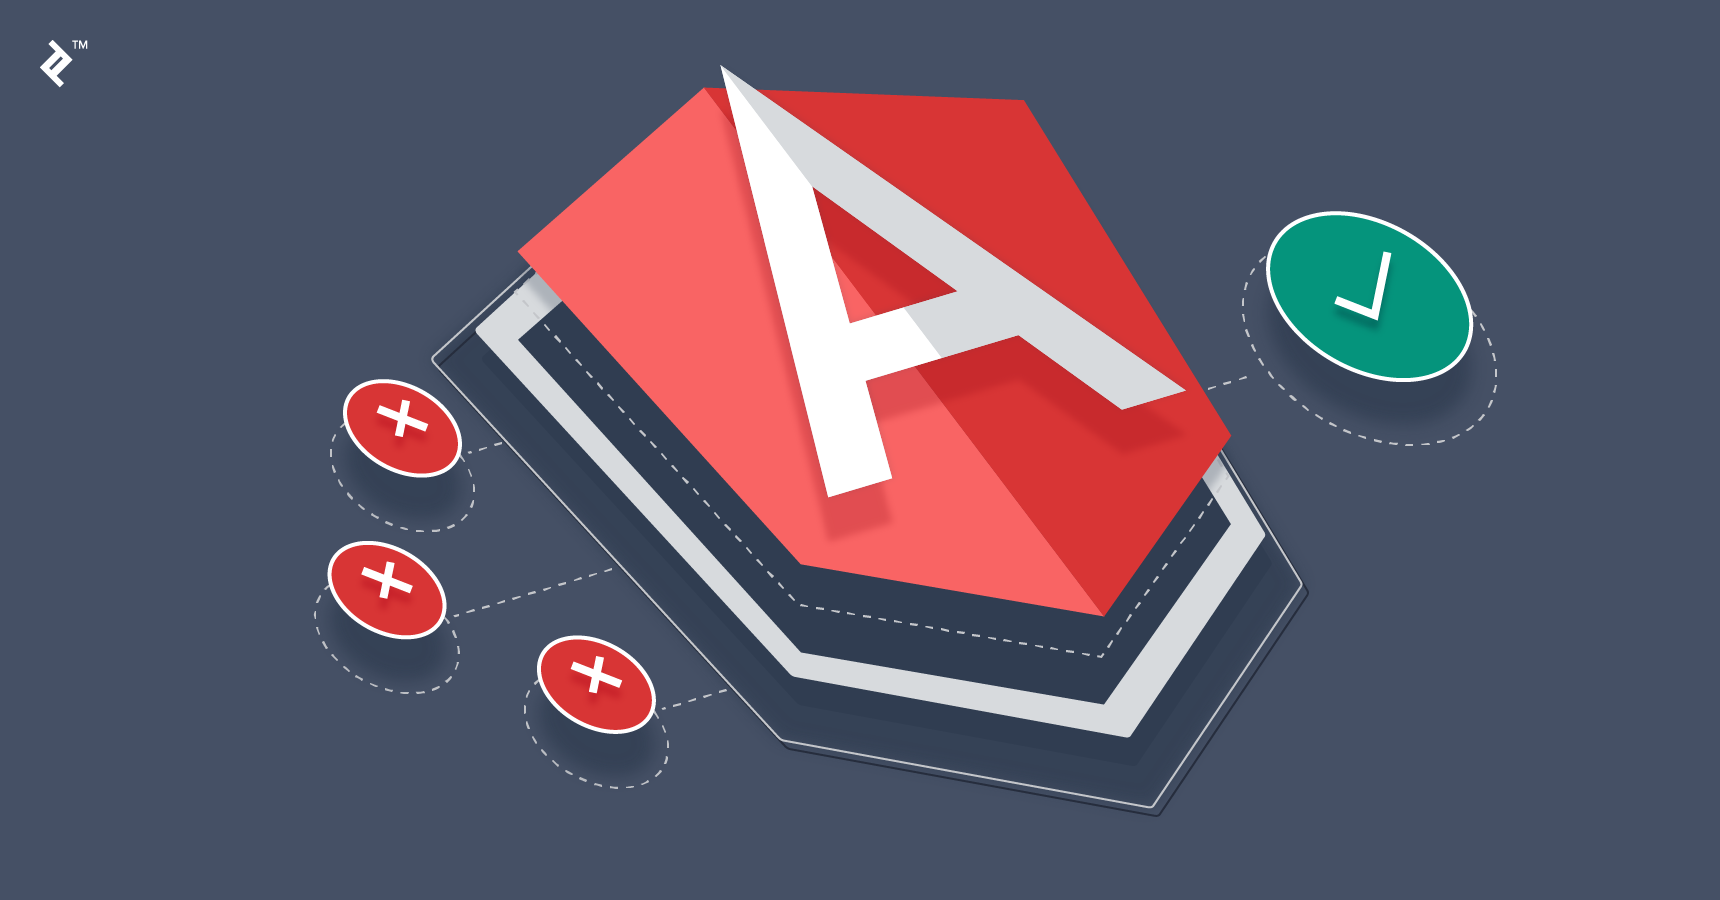 Common AngularJS mistakes